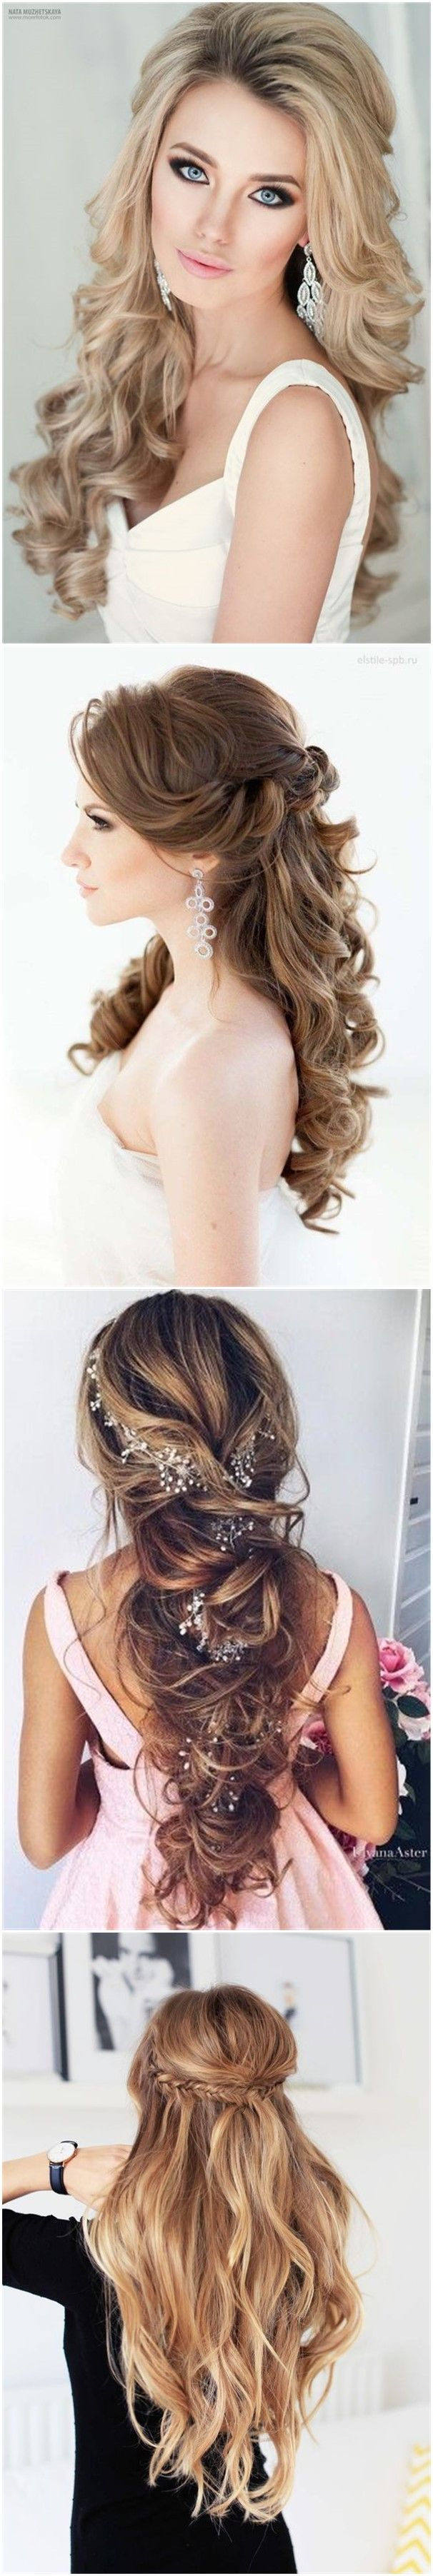 138 best Wedding Makeup images on Pinterest